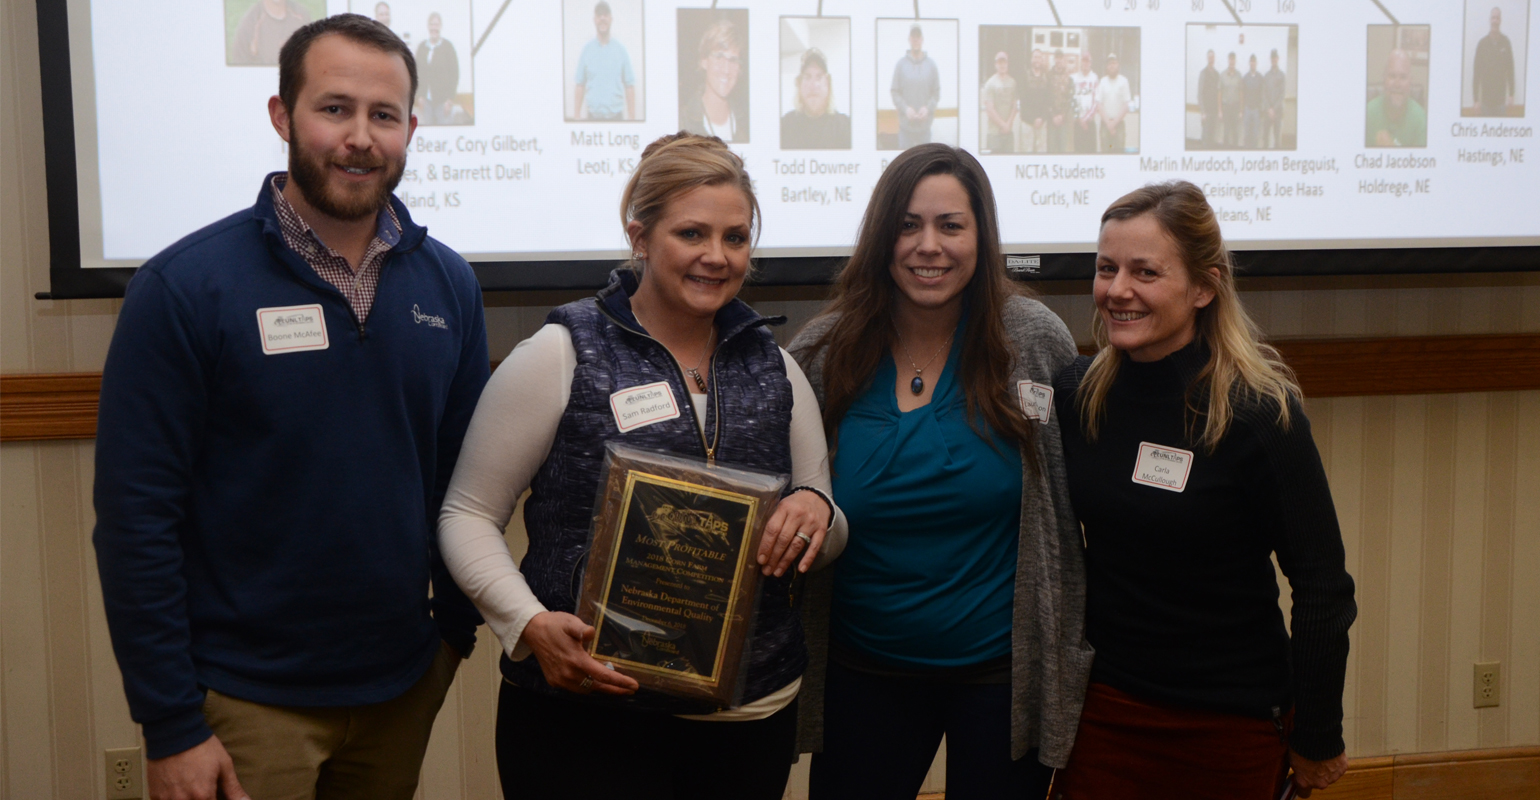 : Boone McAfee, director of research at the Nebraska Corn Board (one of the sponsors of the competition), hands the award for most profitable to the NDEQ team, including L-R: Sam Radford, Laura Johnson, and Carla McCullough